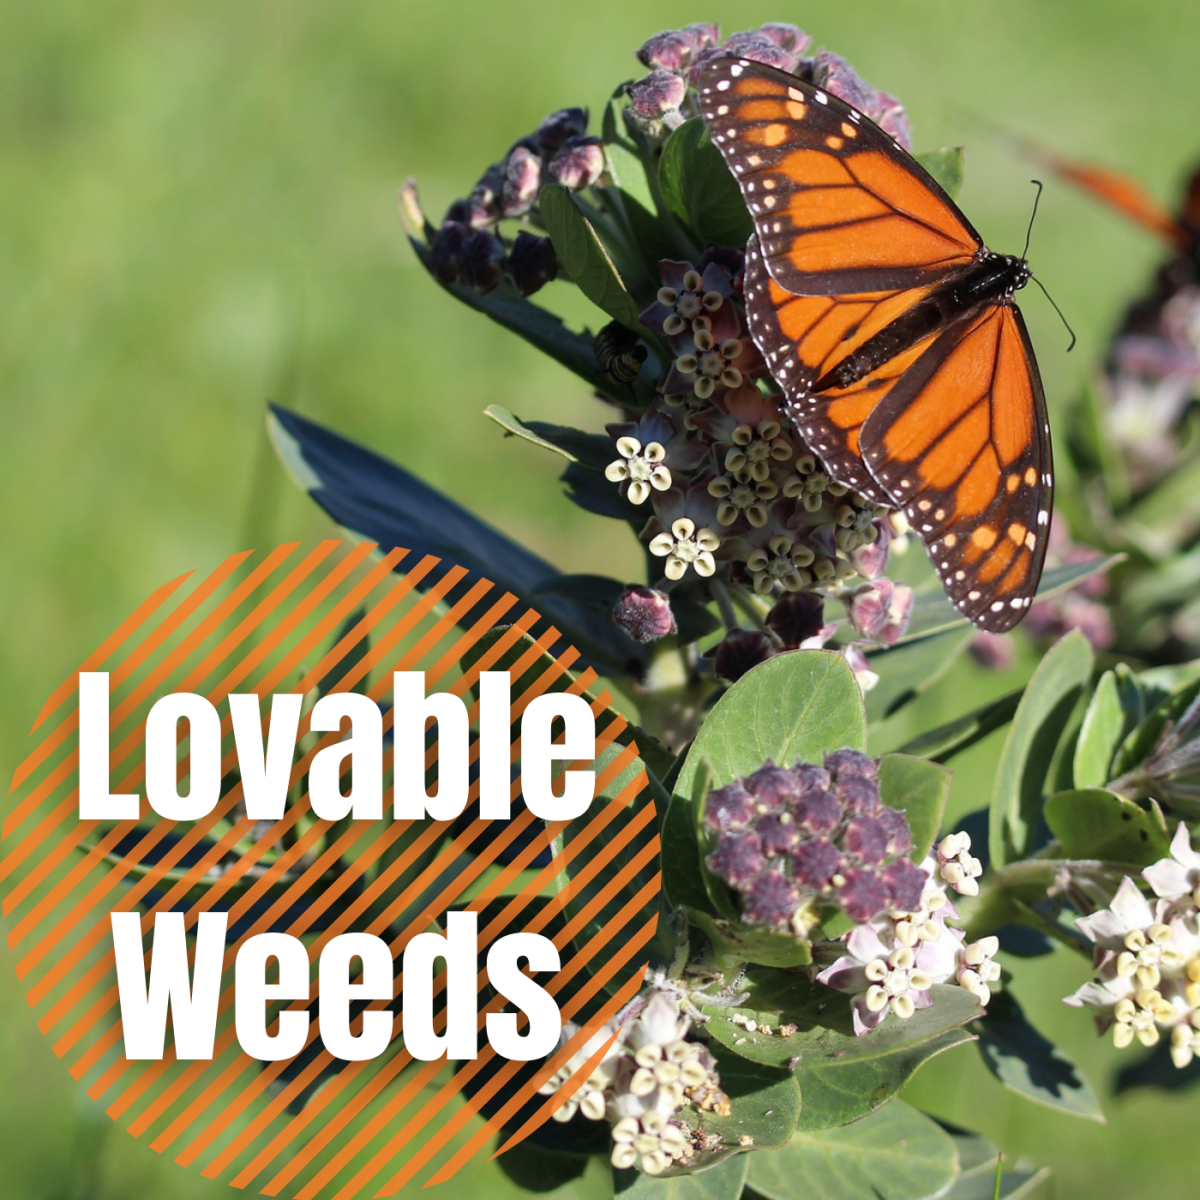 Some weeds are more useful than annoying. They are easy to grow and can add visual appeal while attracting pollinators to your yard.